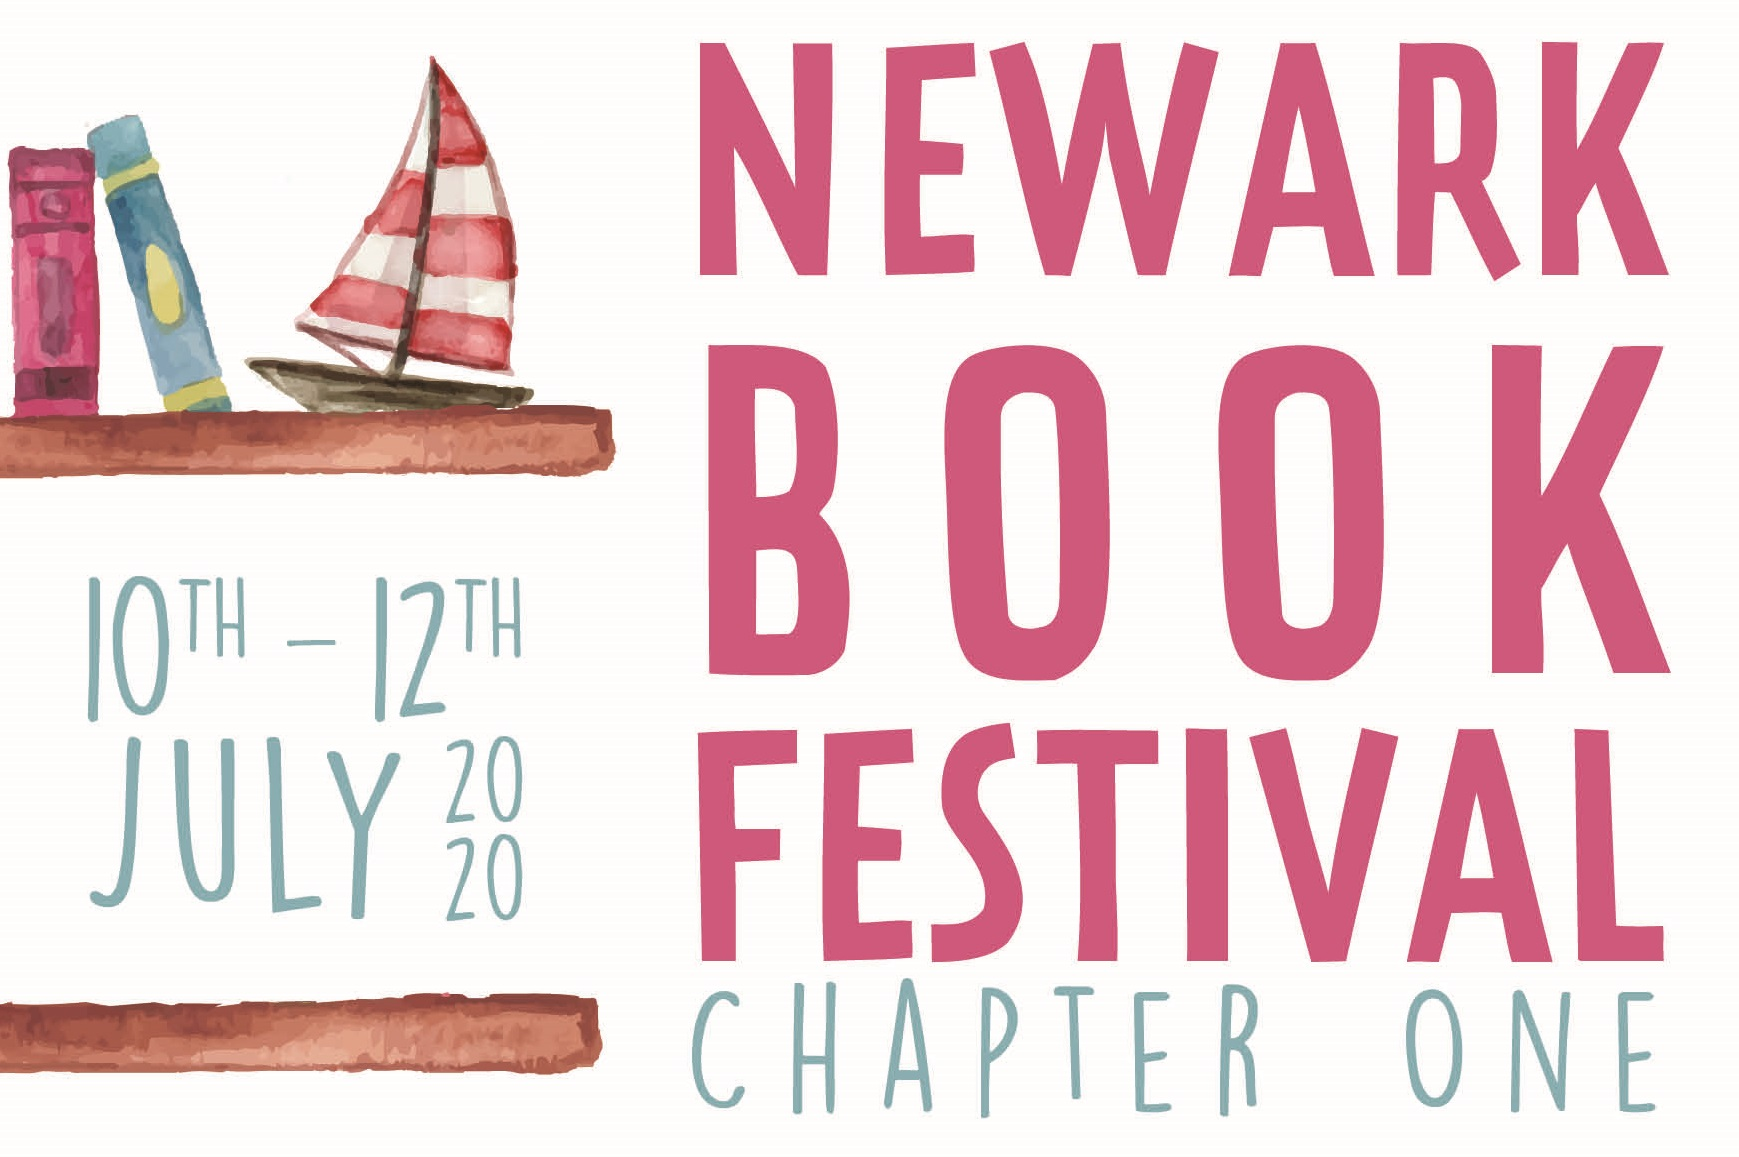 Newark Book Festival: Chapter One